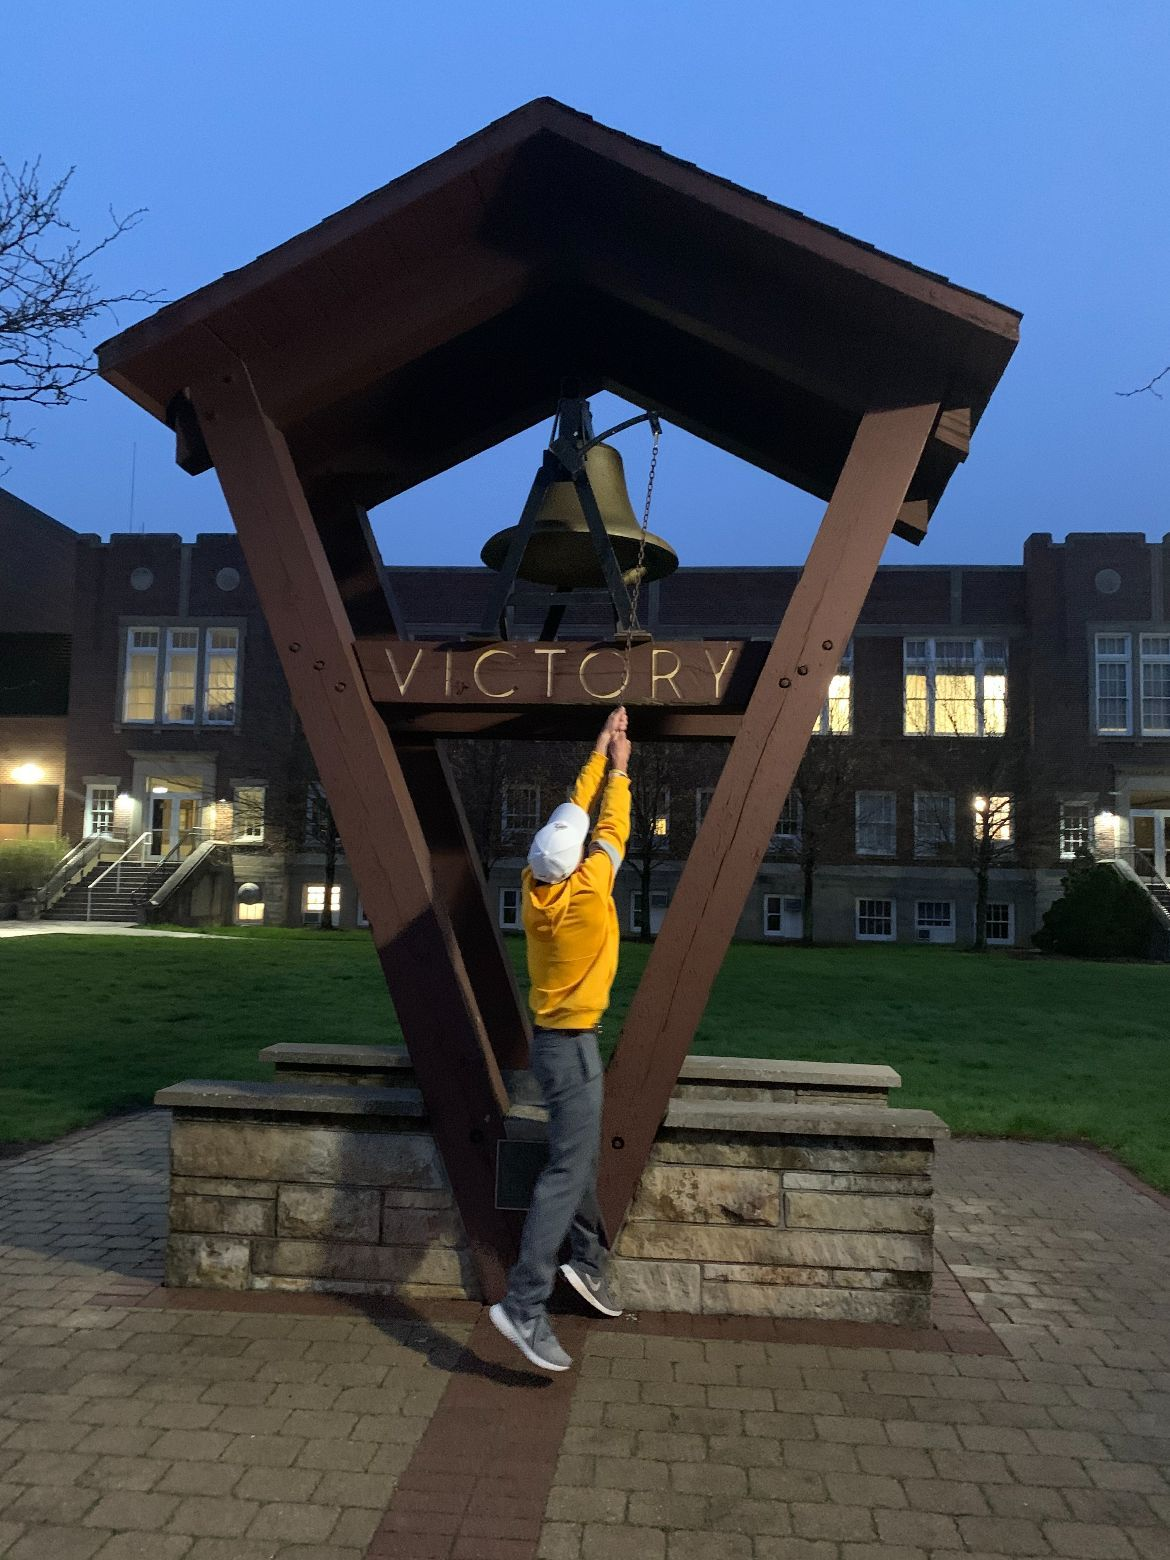 Caleb VanArragon rang the Victory Bell after his first collegiate medalist honor.